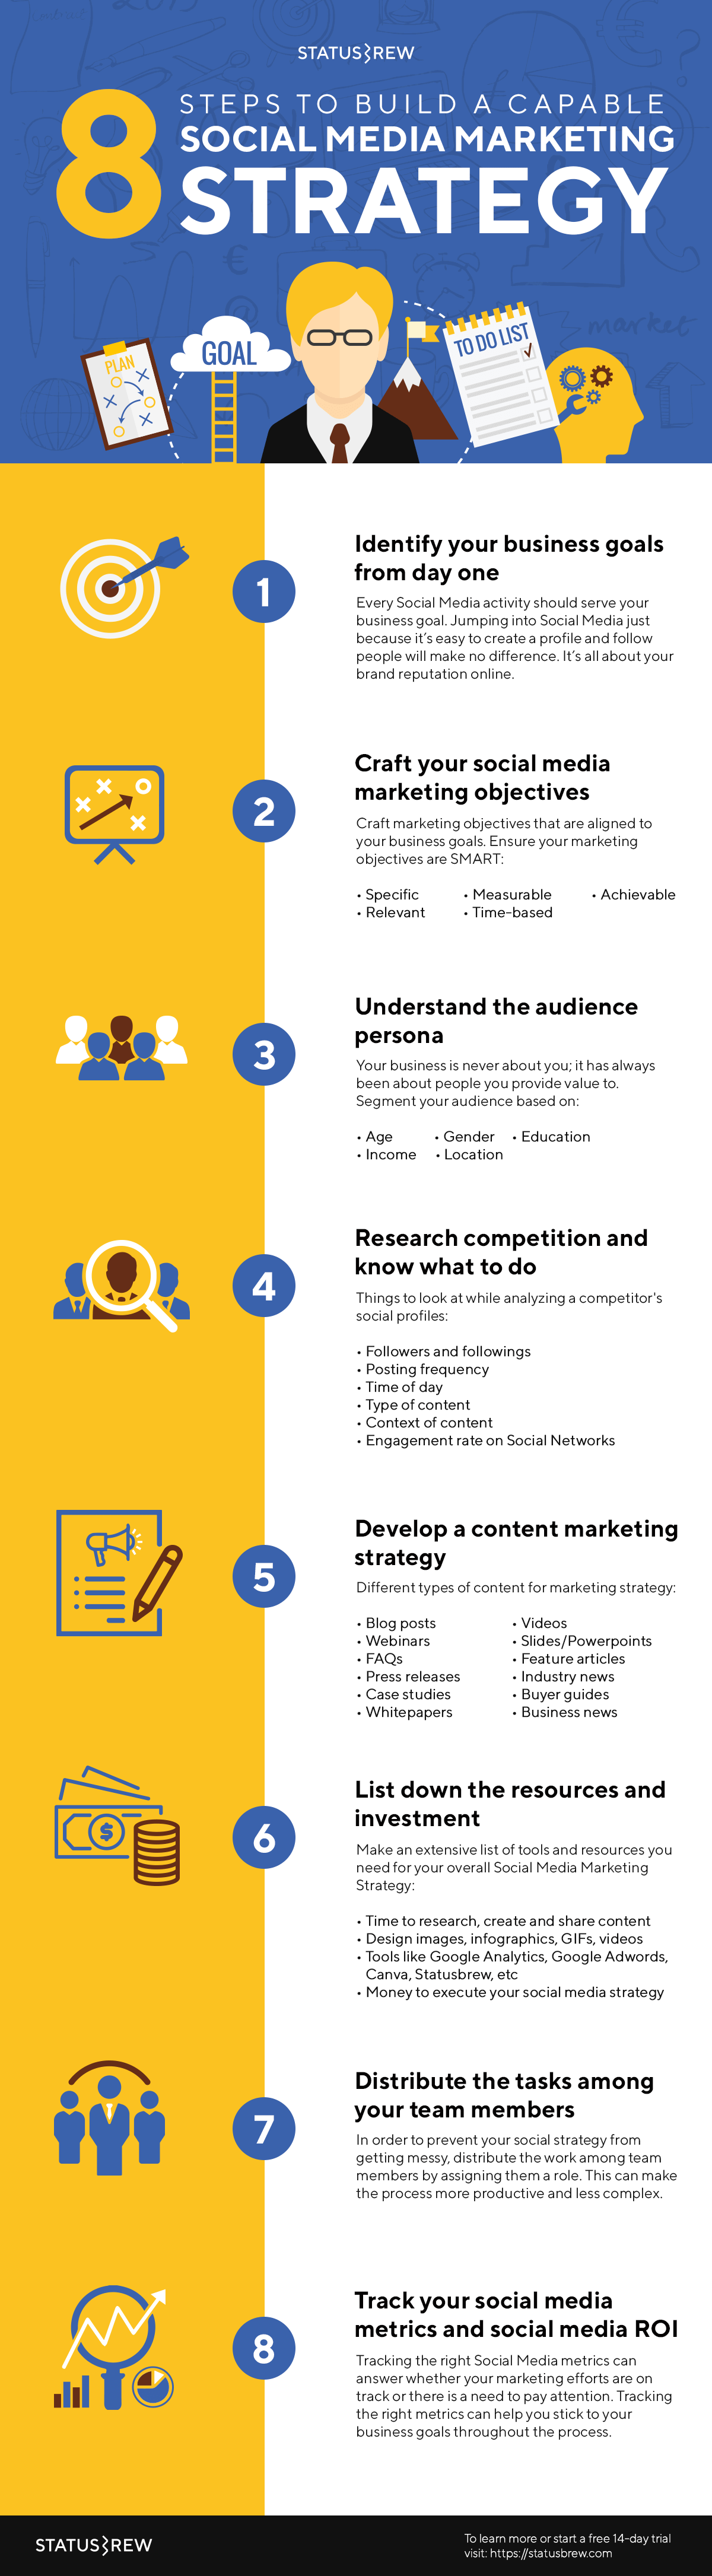 Infographic provides an overview of social media strategy essentials